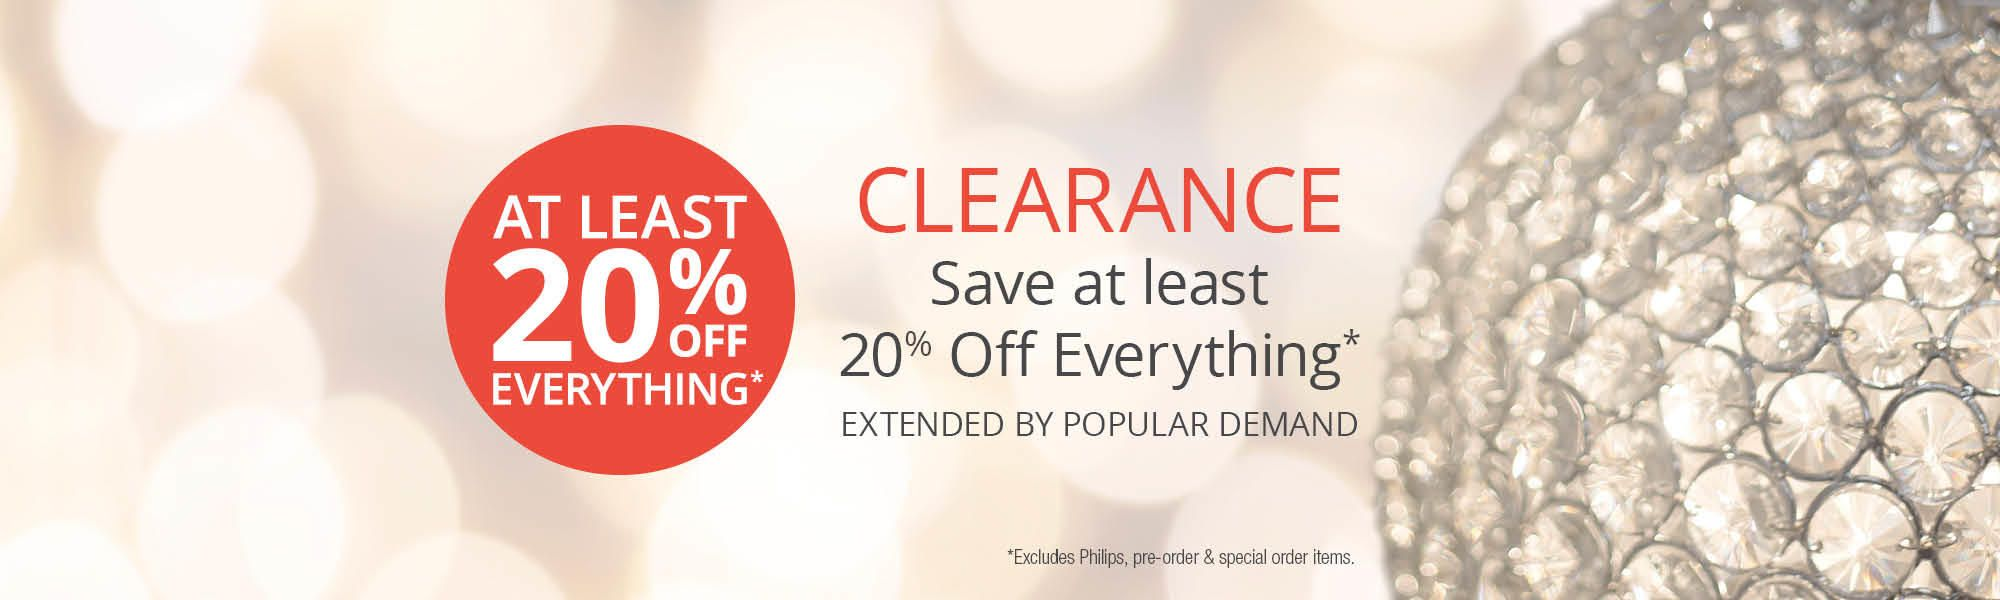 Get an at least 30% off everything!* Excludes Philips, pre-order and special order items